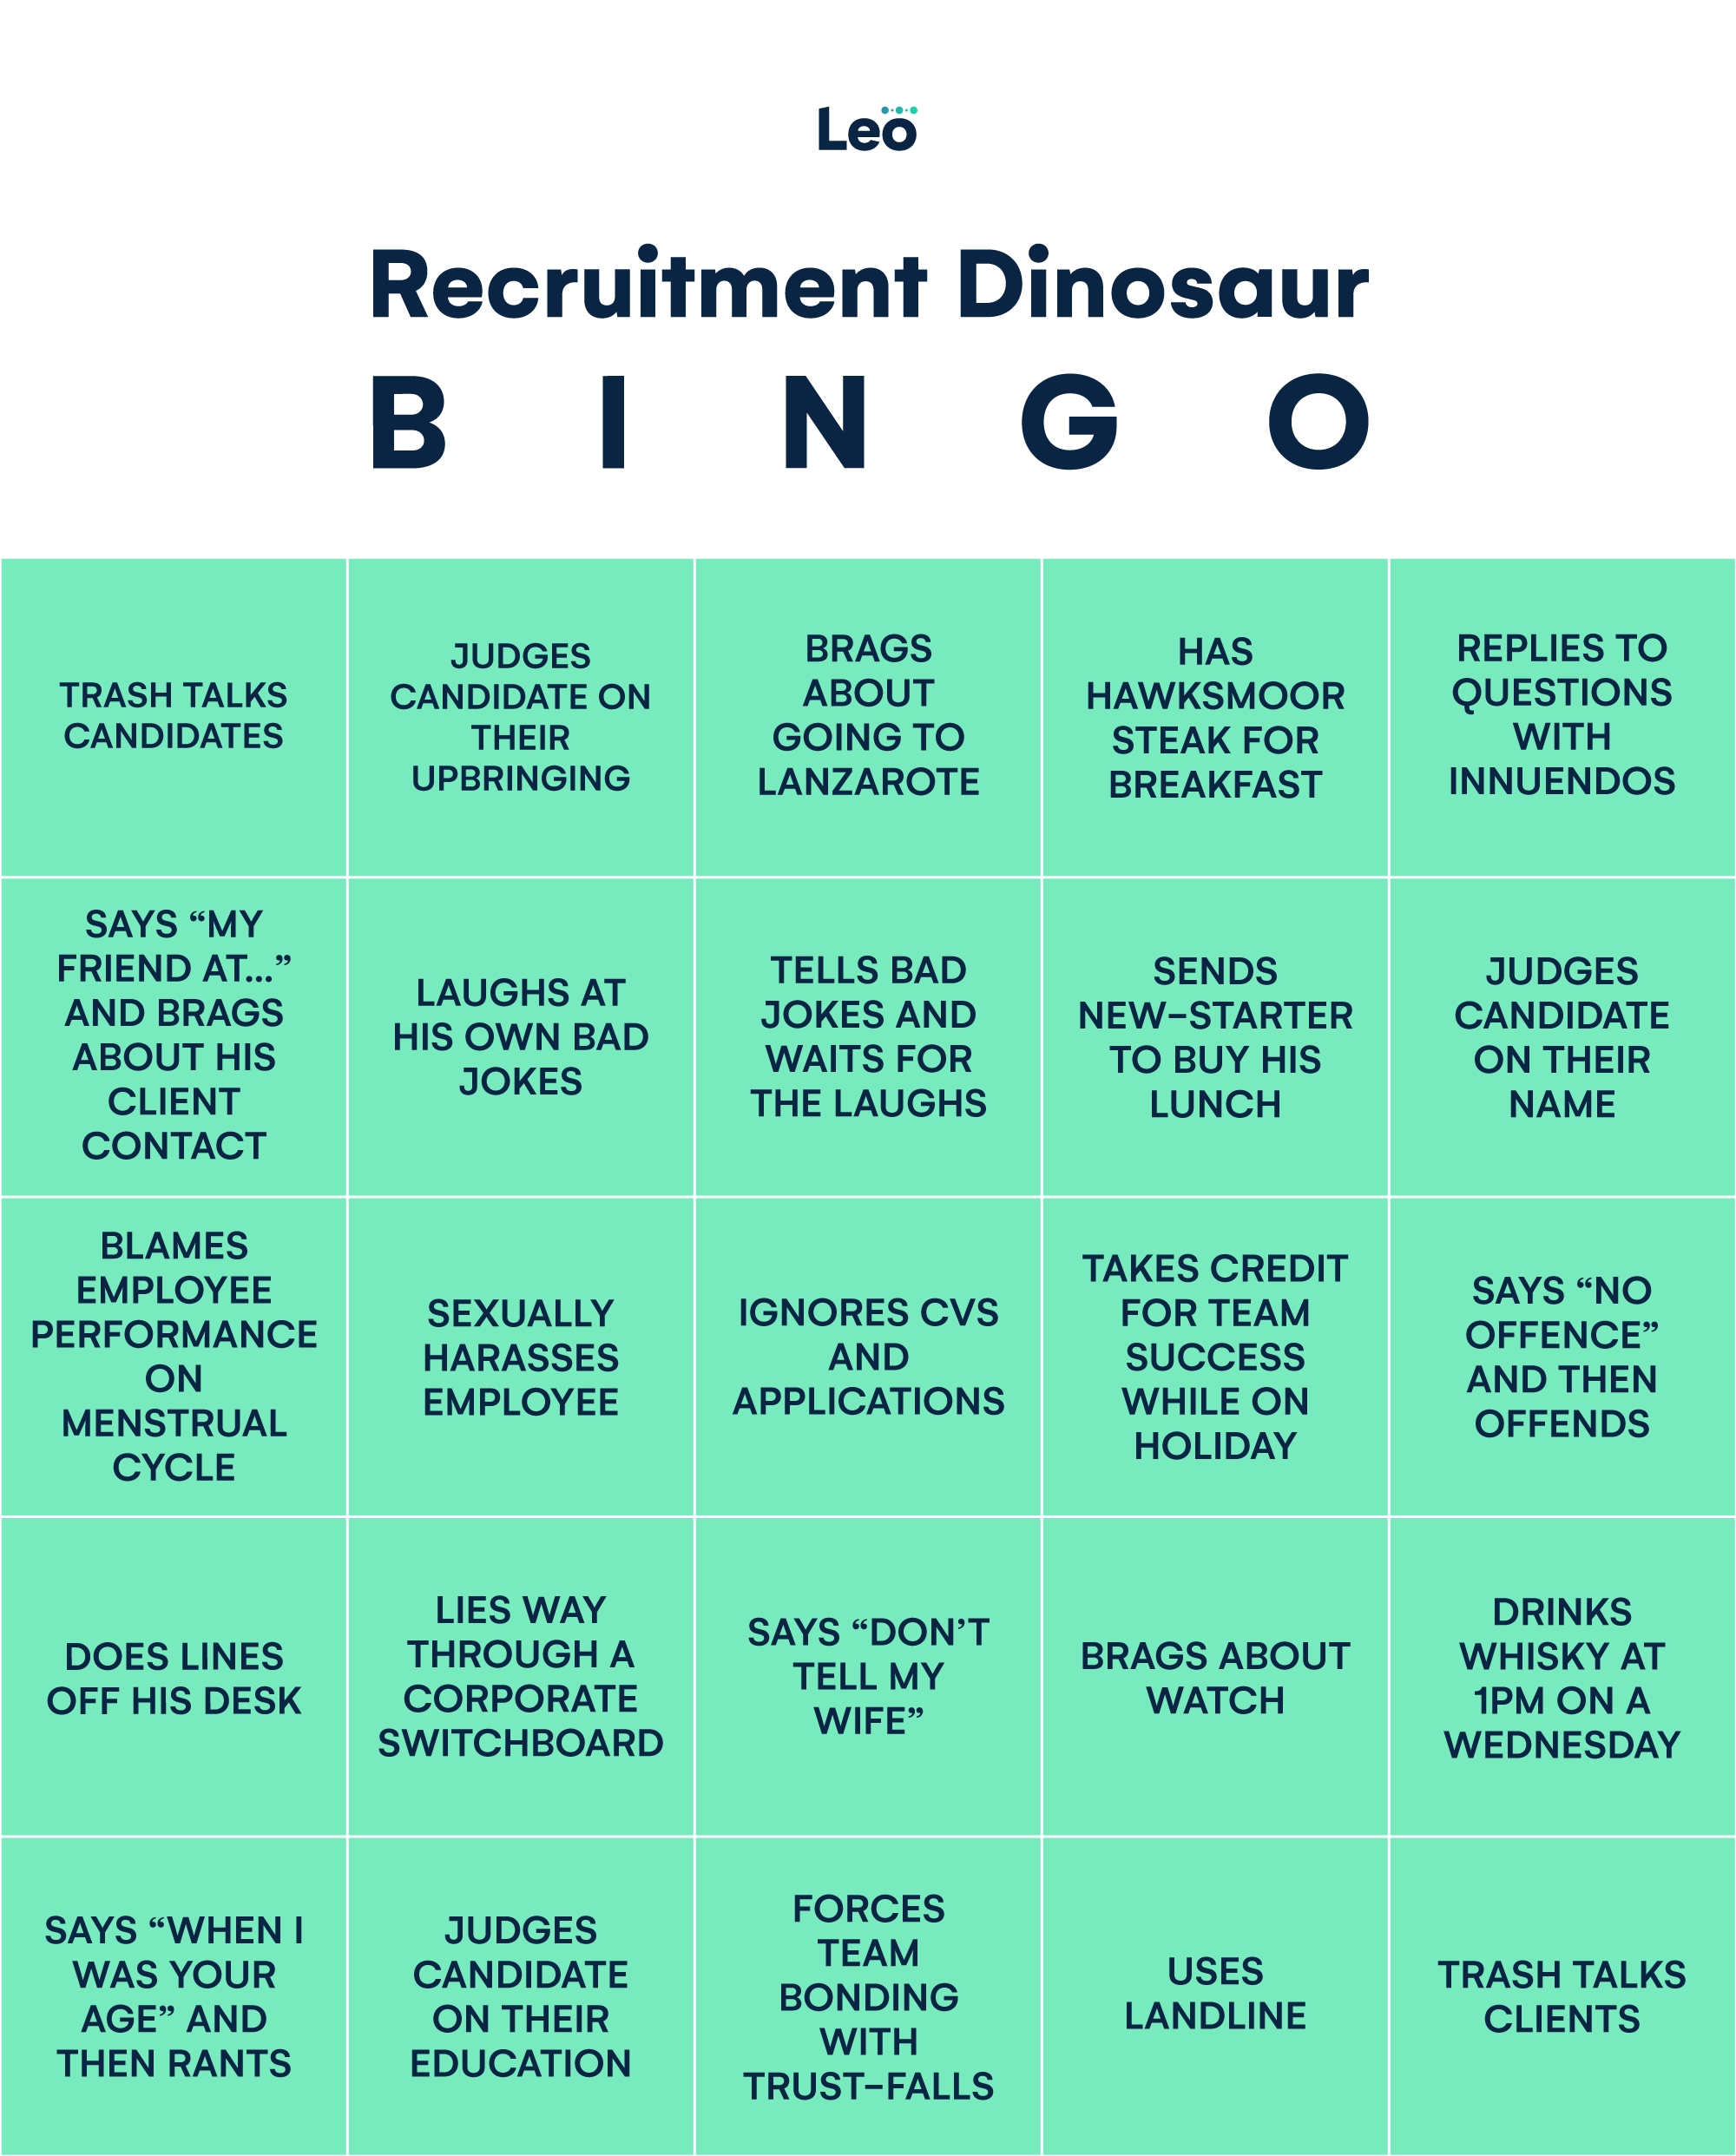 Recruitd Leo-Recruitment-Dinosaur-blog Bingo V0.2